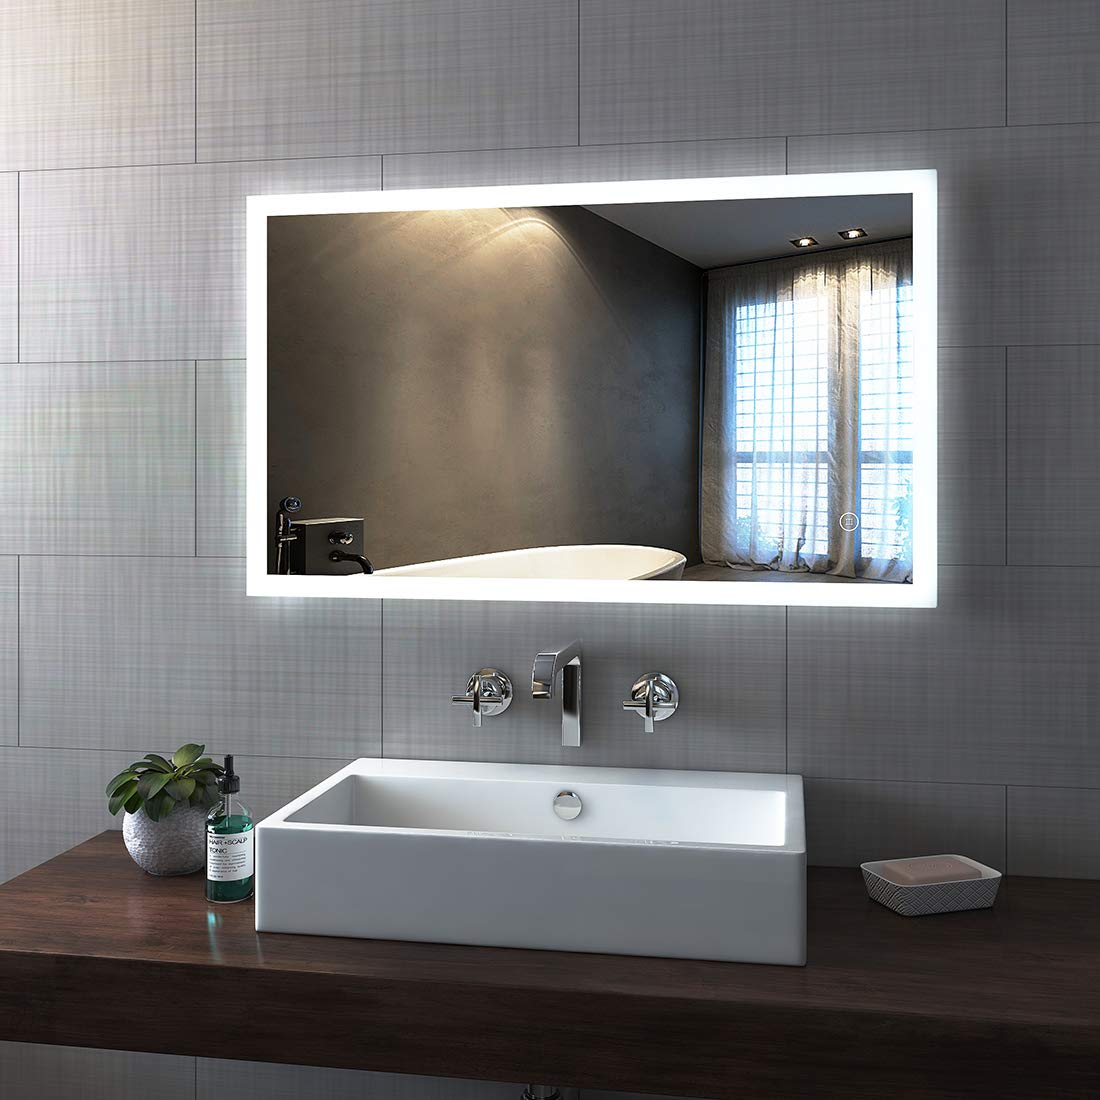 1000 x 700 mm   Touch + Demister - Style 1 Duschdeluxe 800 x 600 mm LED Illuminated Bathroom Mirror with Demister   Heated Backlit Bathroom Mirrors Light with Touch Sensor Switch + Demister Pad - Style 1